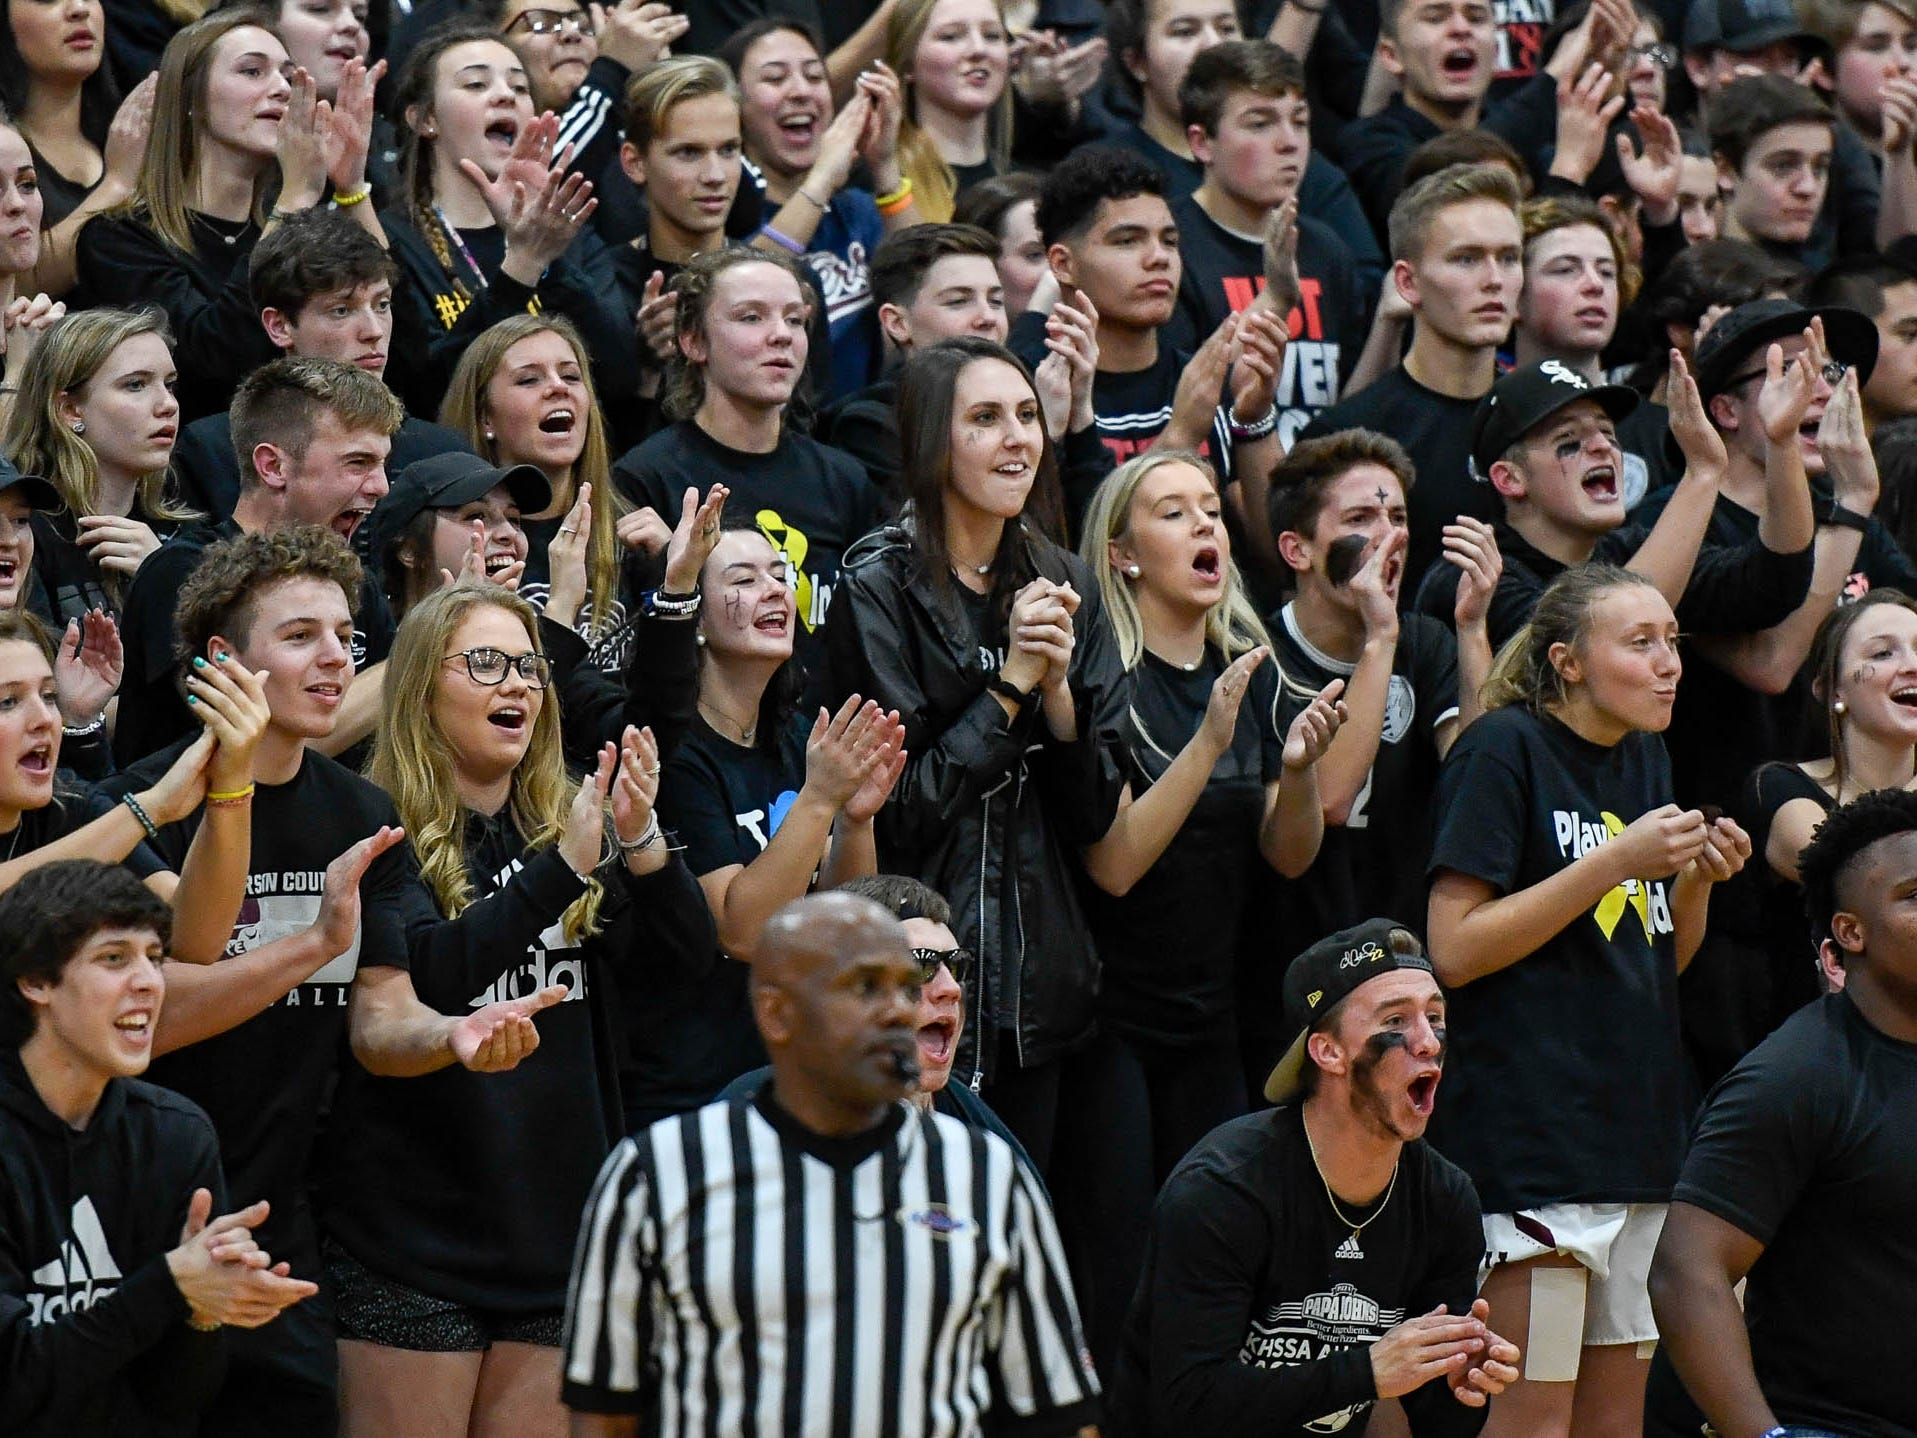 The Henderson County student section as the Henderson County Colonels play 6th district rival the Webster County Trojans at Henderson's Colonel Gym Tuesday, January 8, 2019.